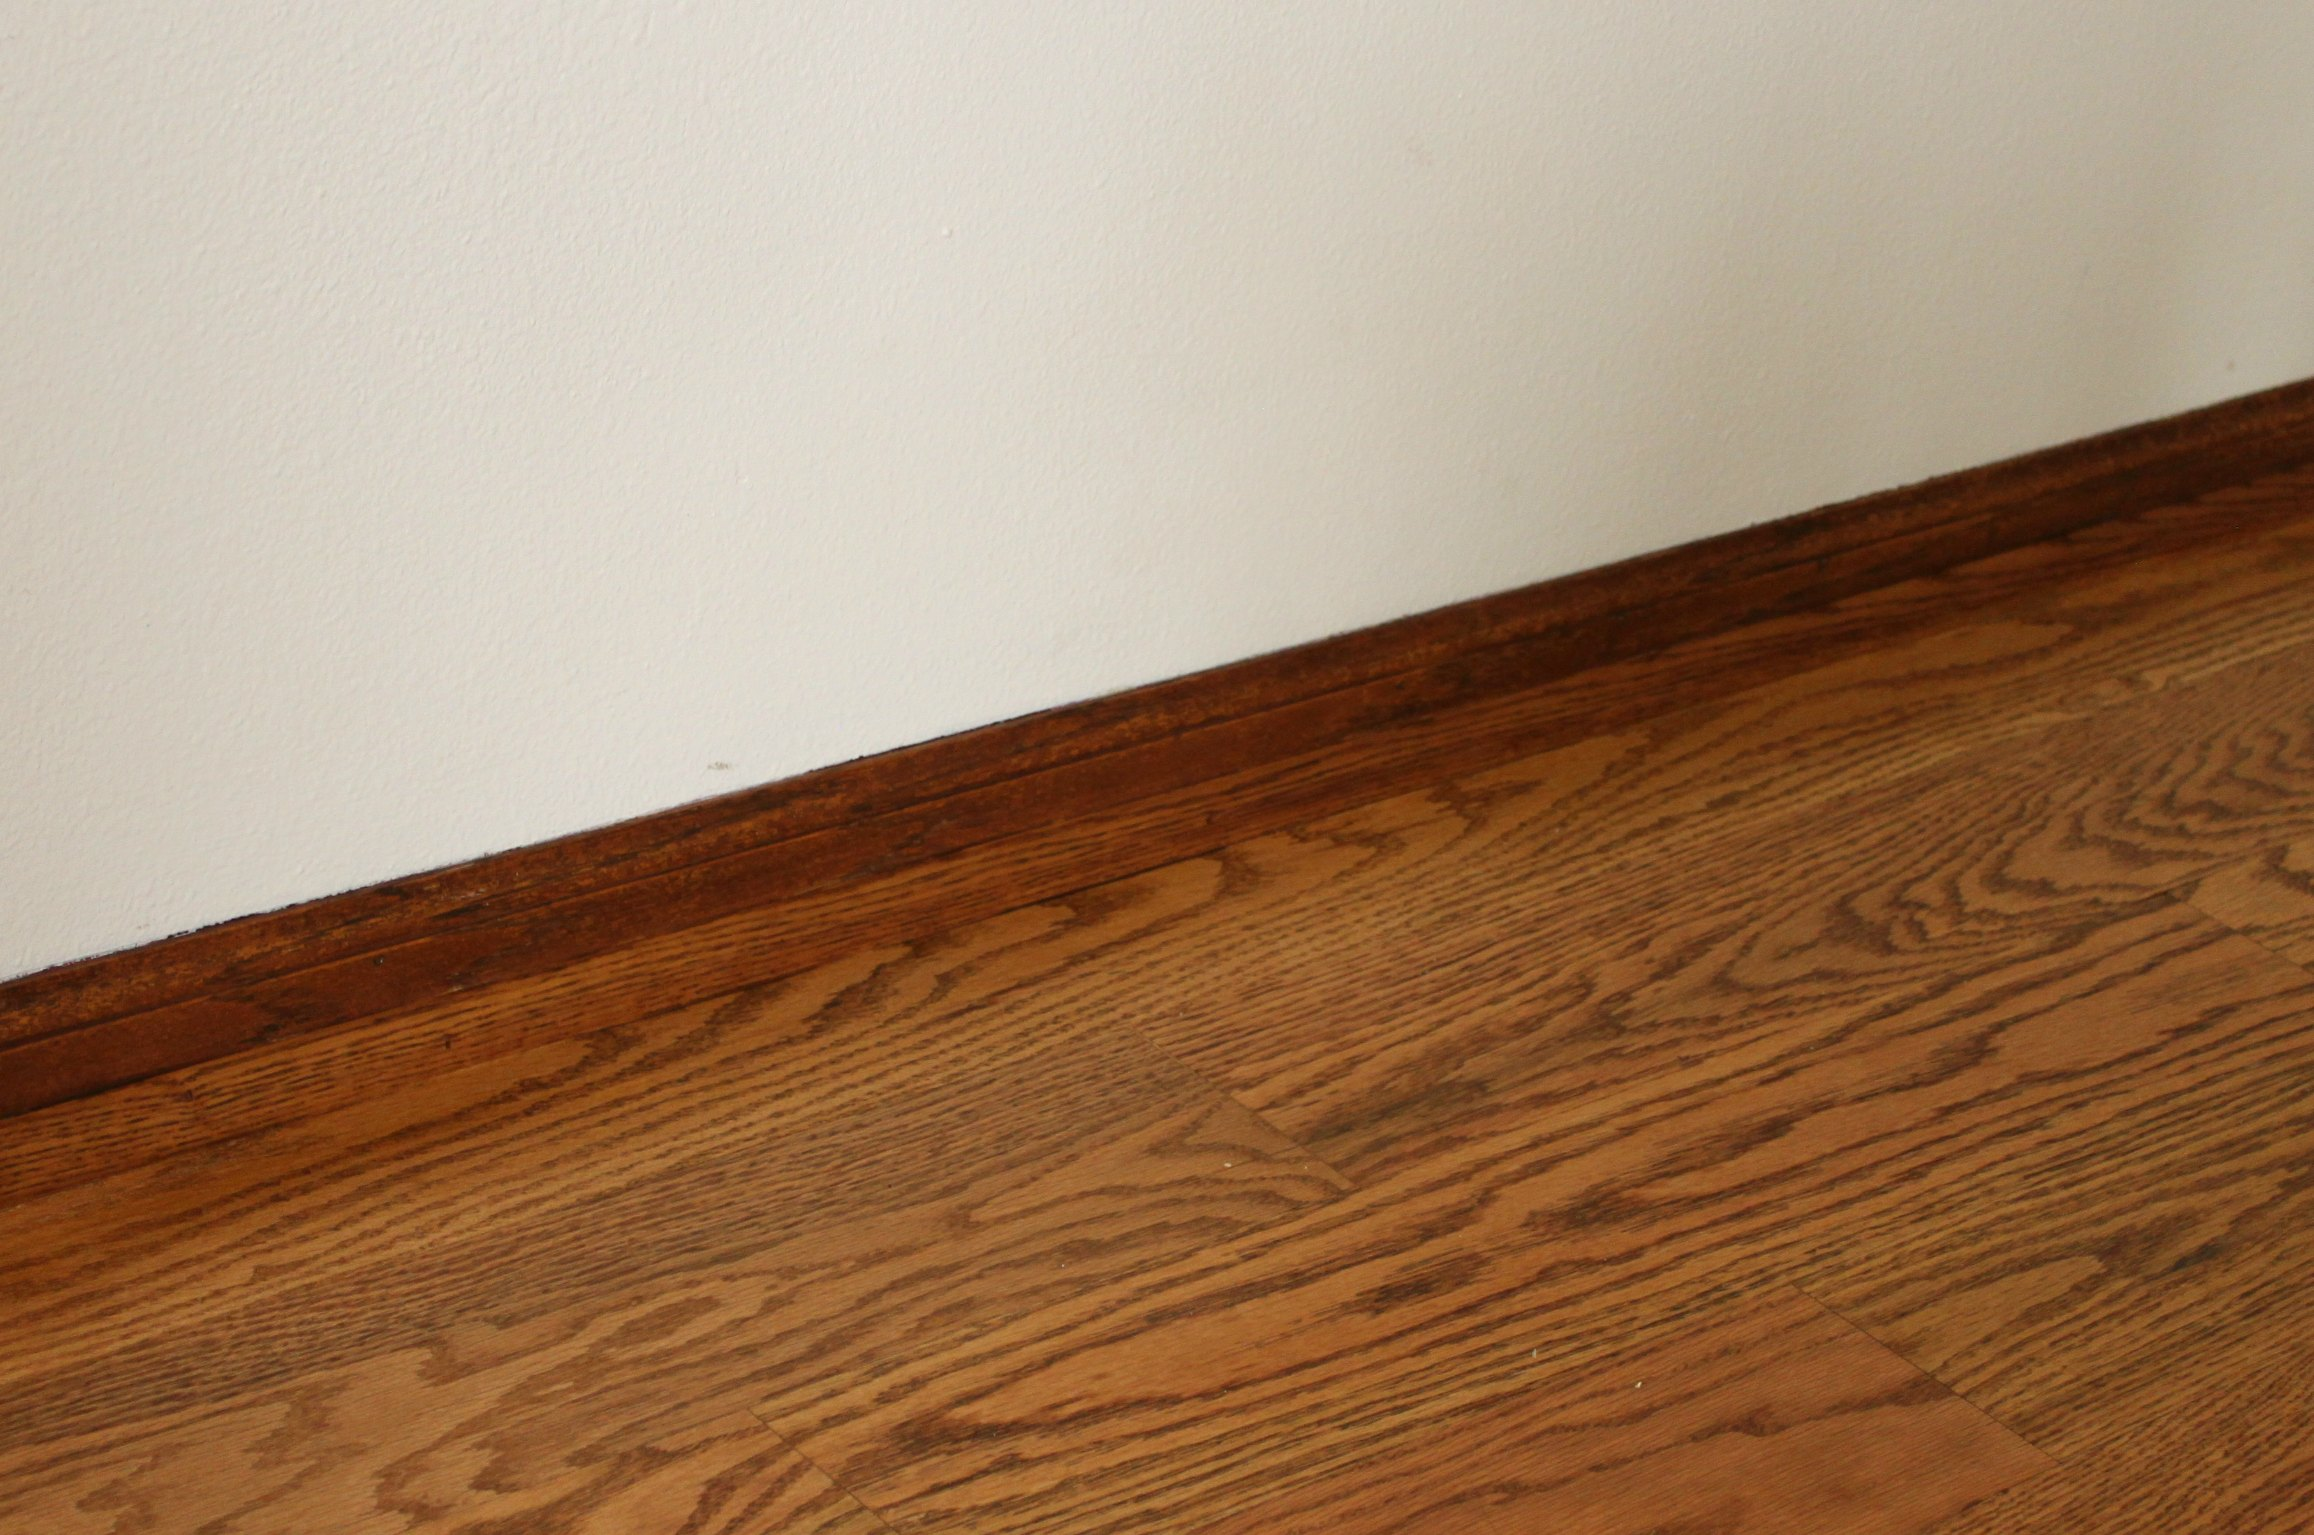 how to clean nicotine stain off baseboards